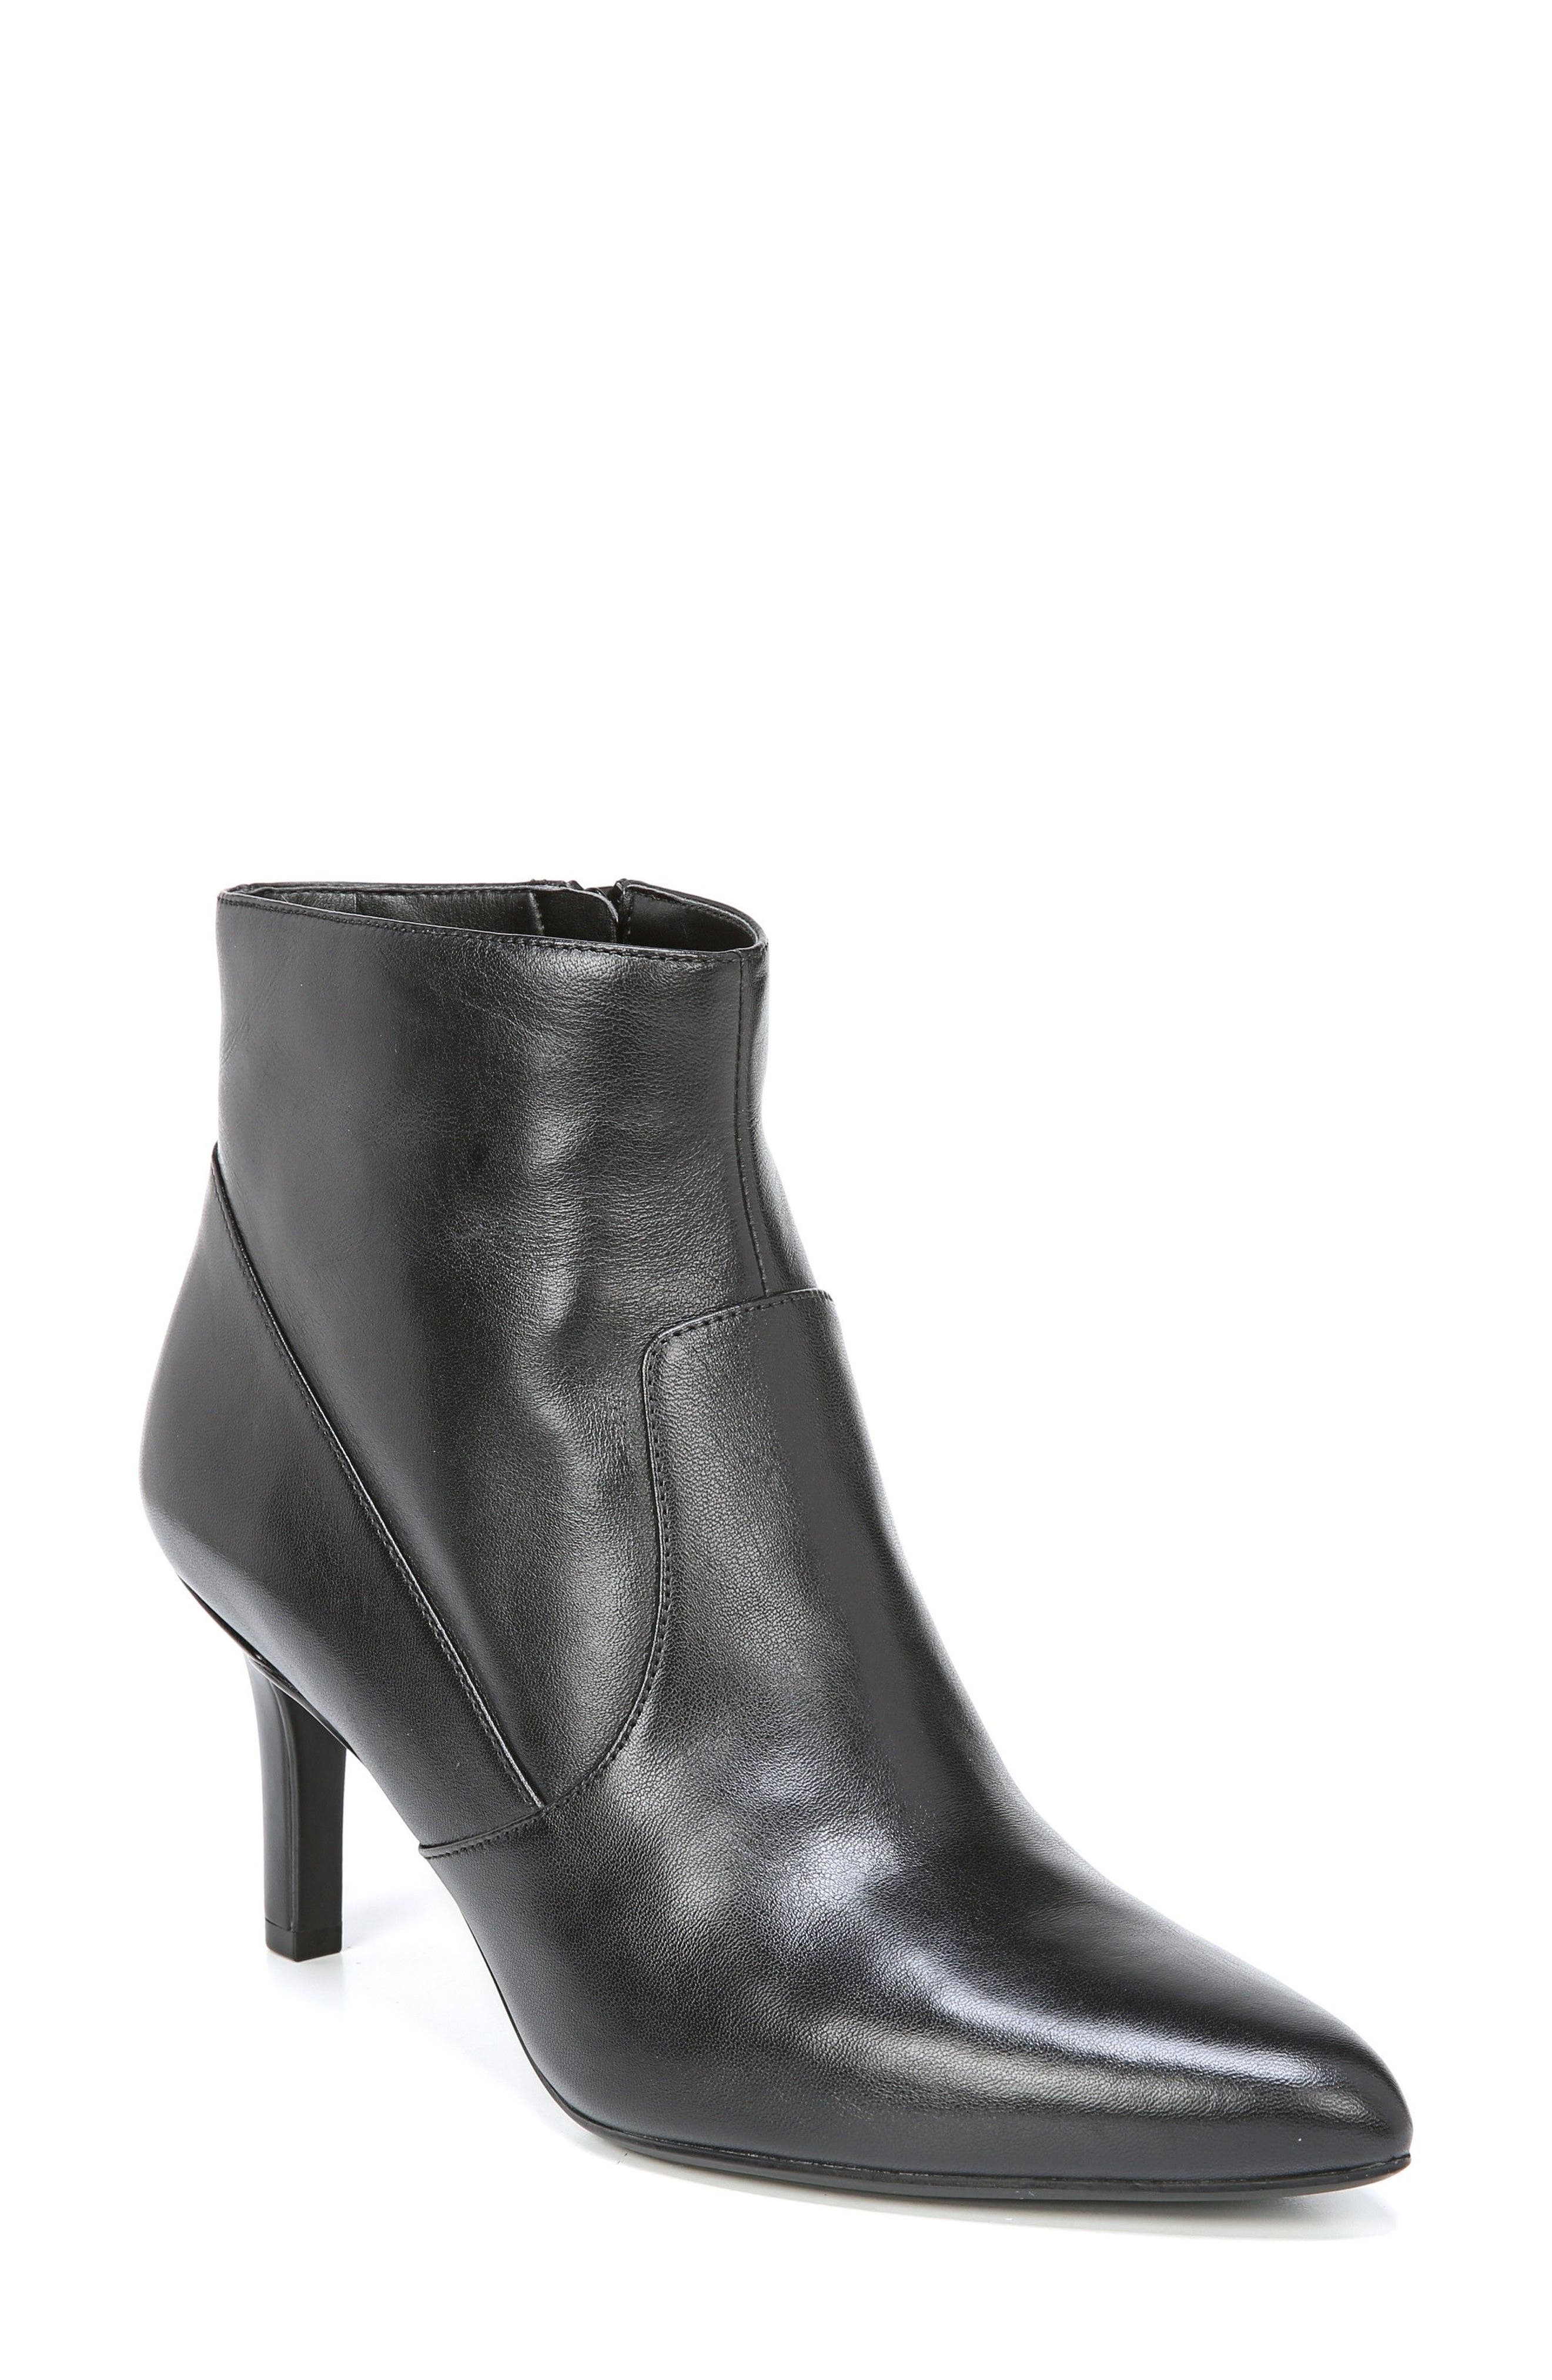 Nadine Bootie,                             Main thumbnail 1, color,                             Black Leather